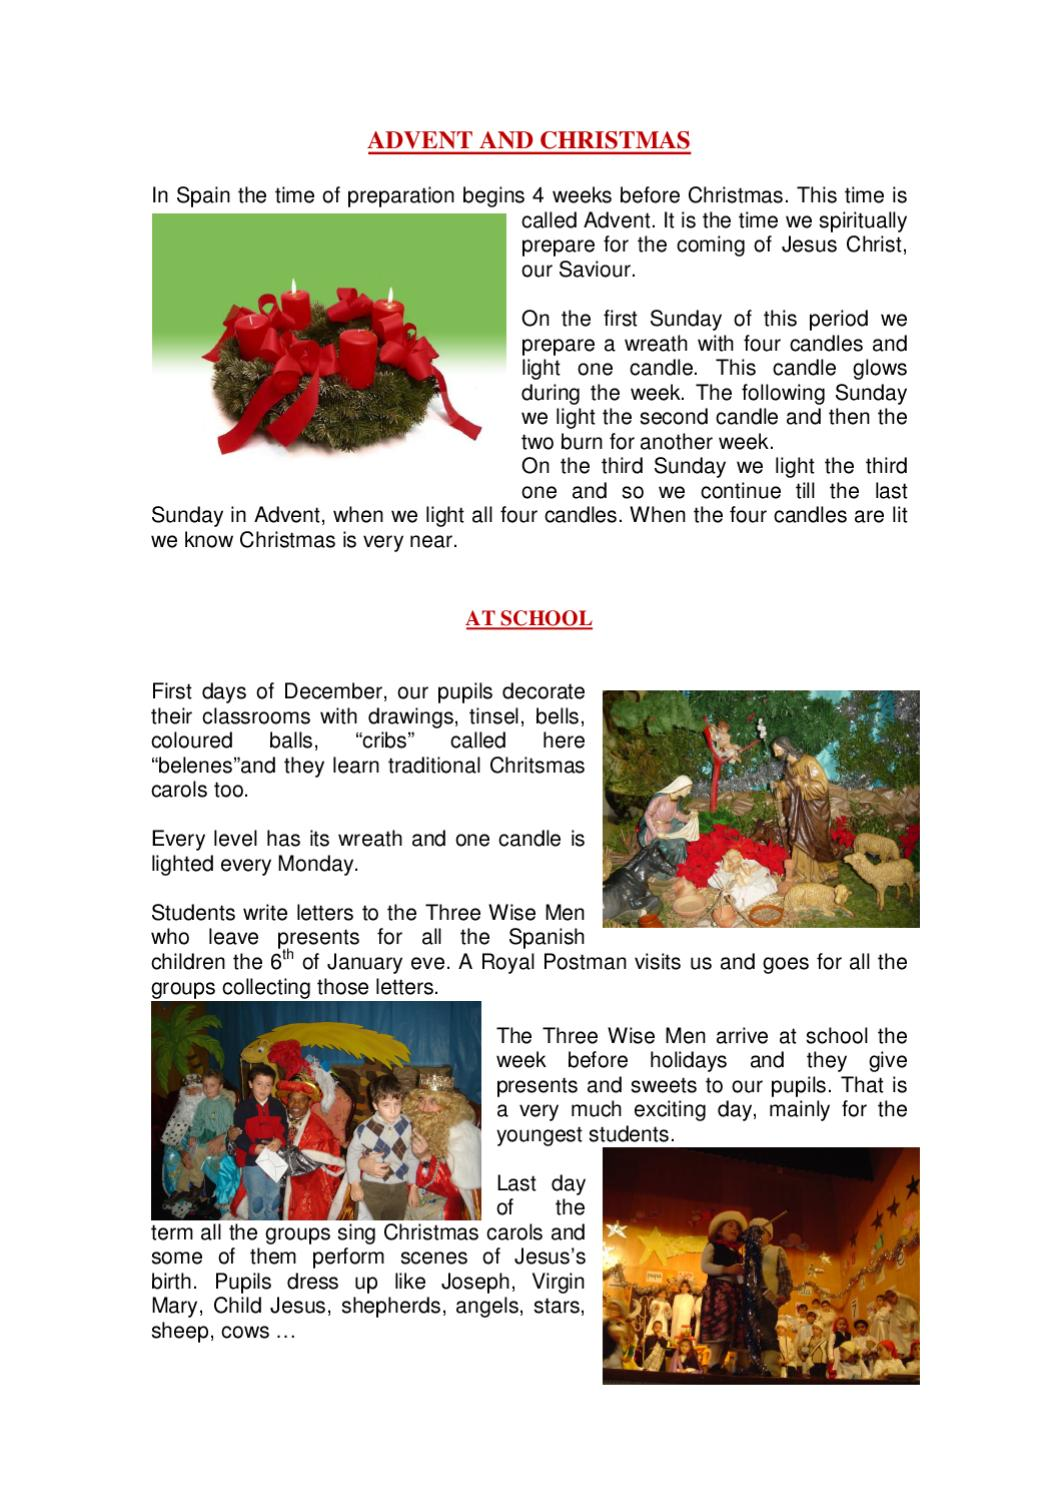 Christmas Traditions in Spain by PURIFICACIÓN FERNÁNDEZ - issuu